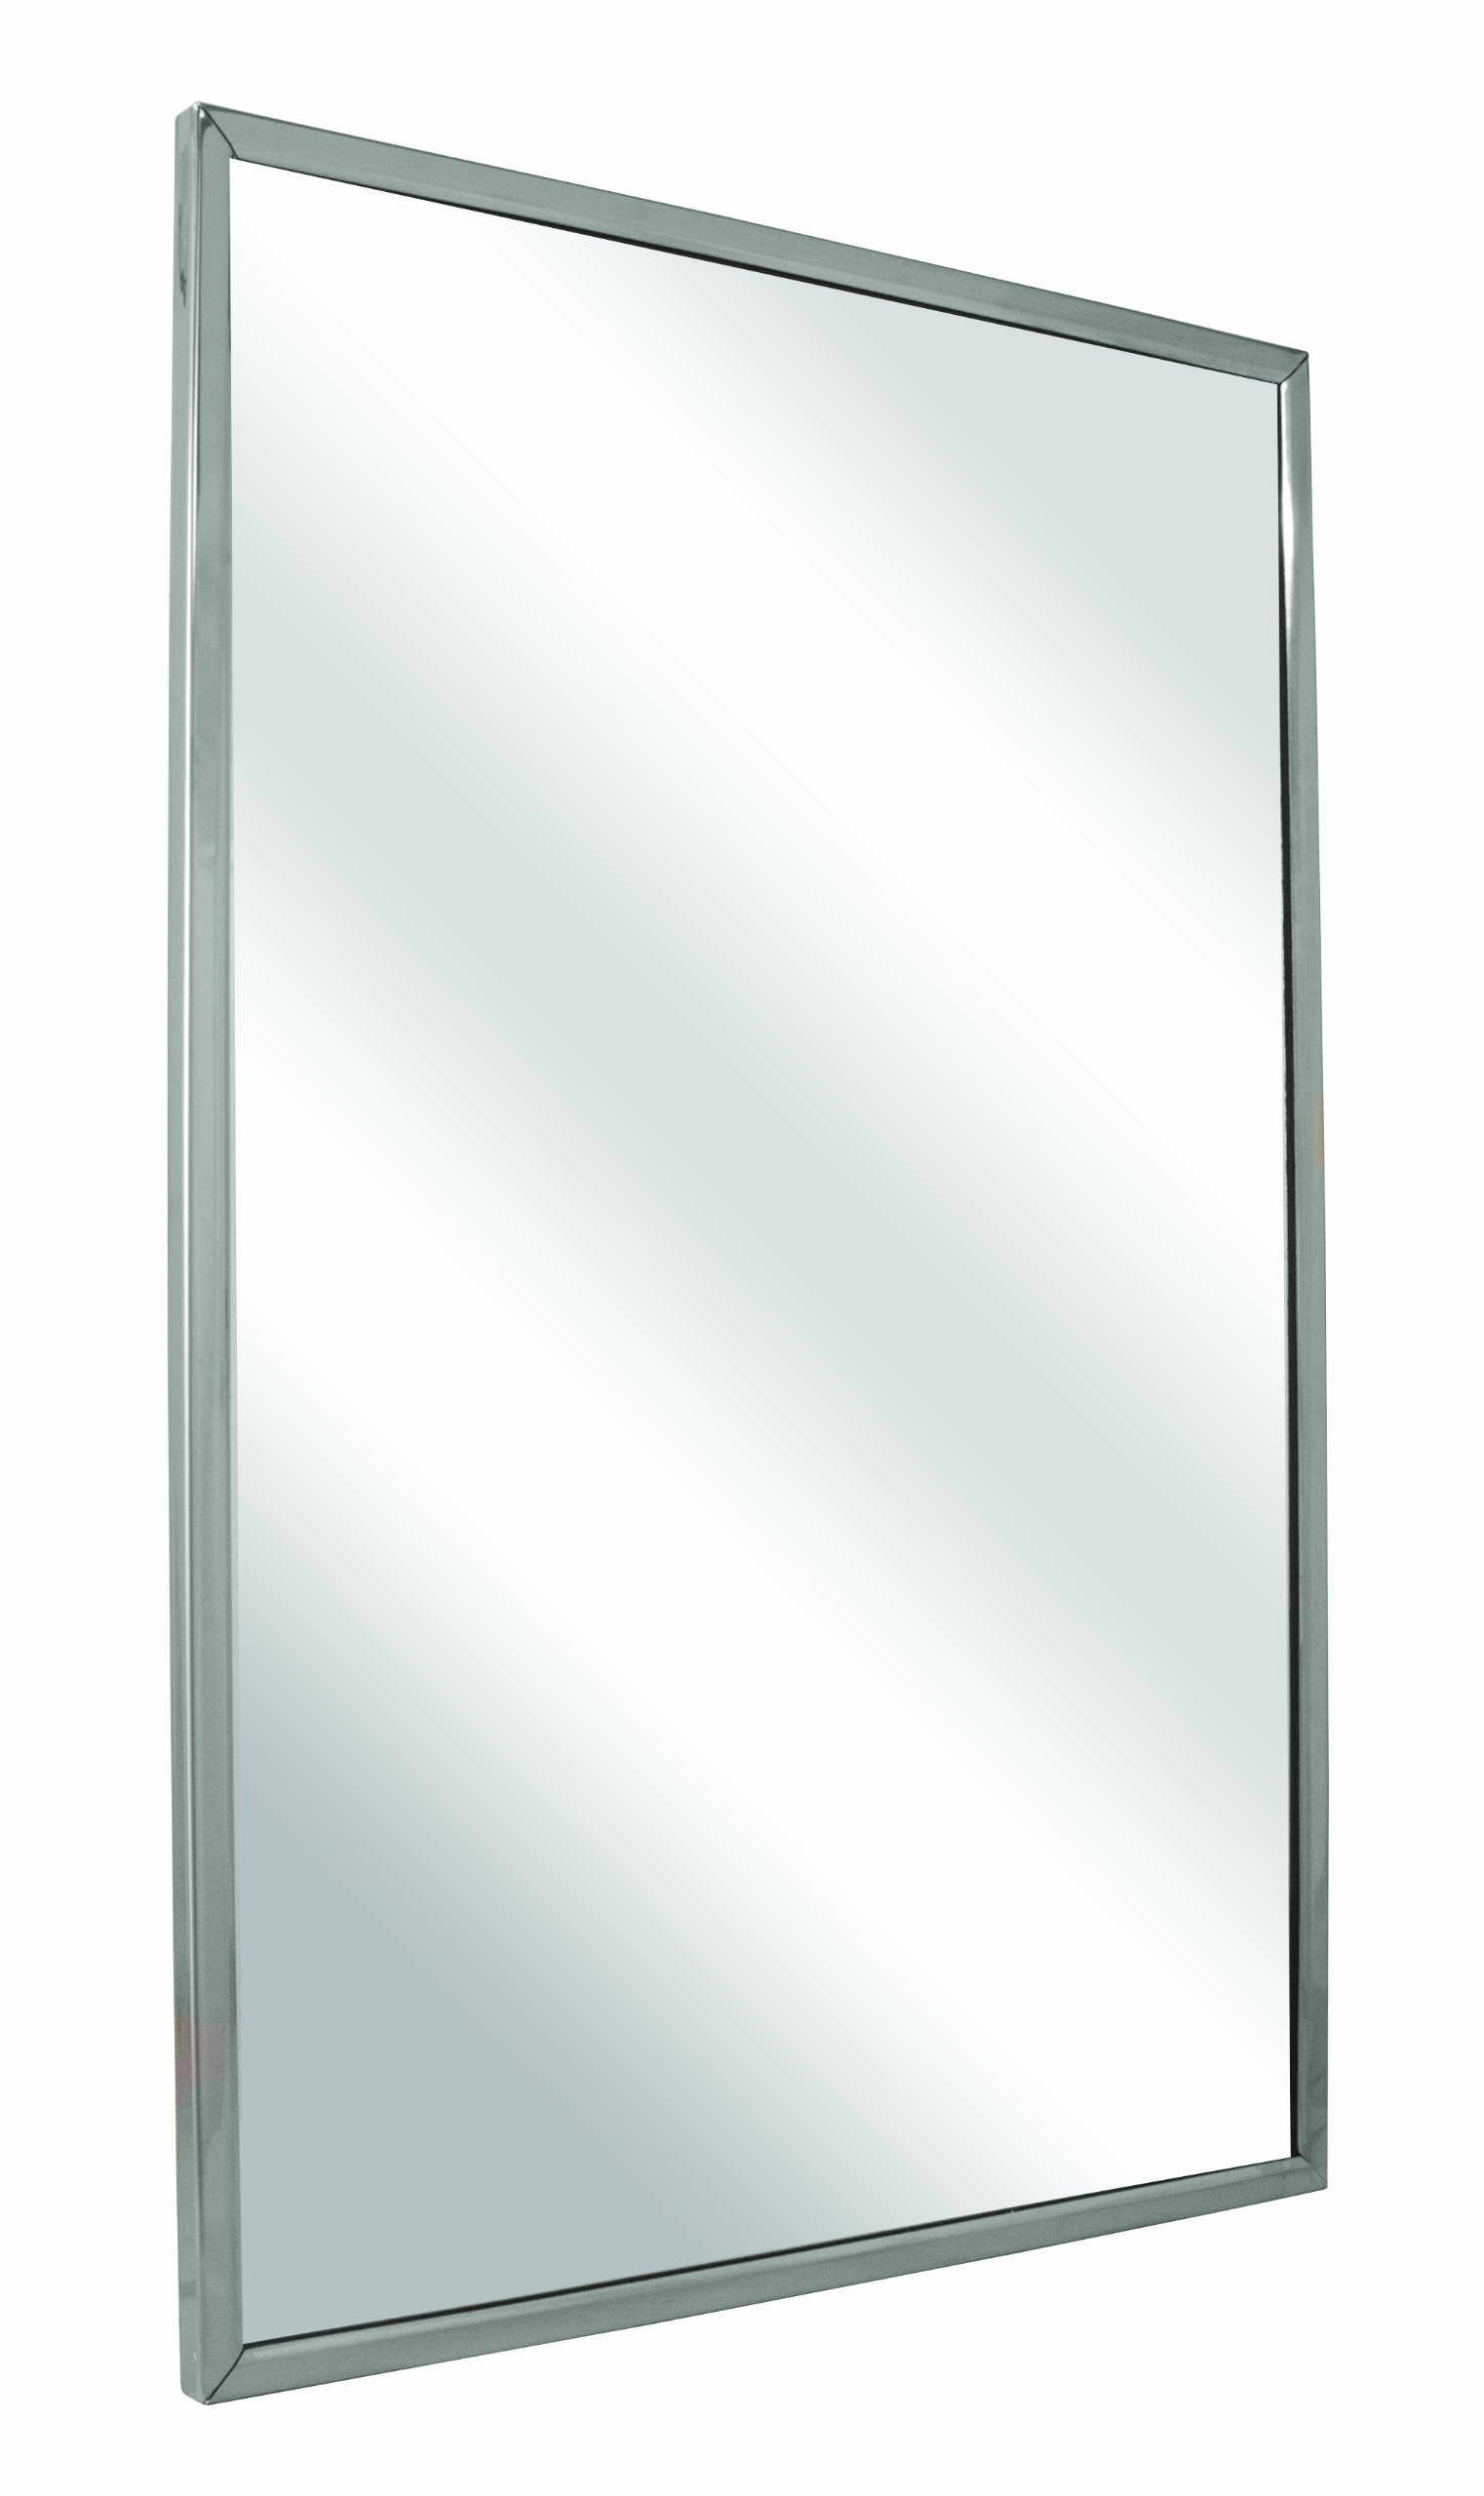 Bradley 780-024360 Float Glass Angle Frame Mirror with Welded Corners and Theft Resistant Mounting, 24'' Width x 36'' Height